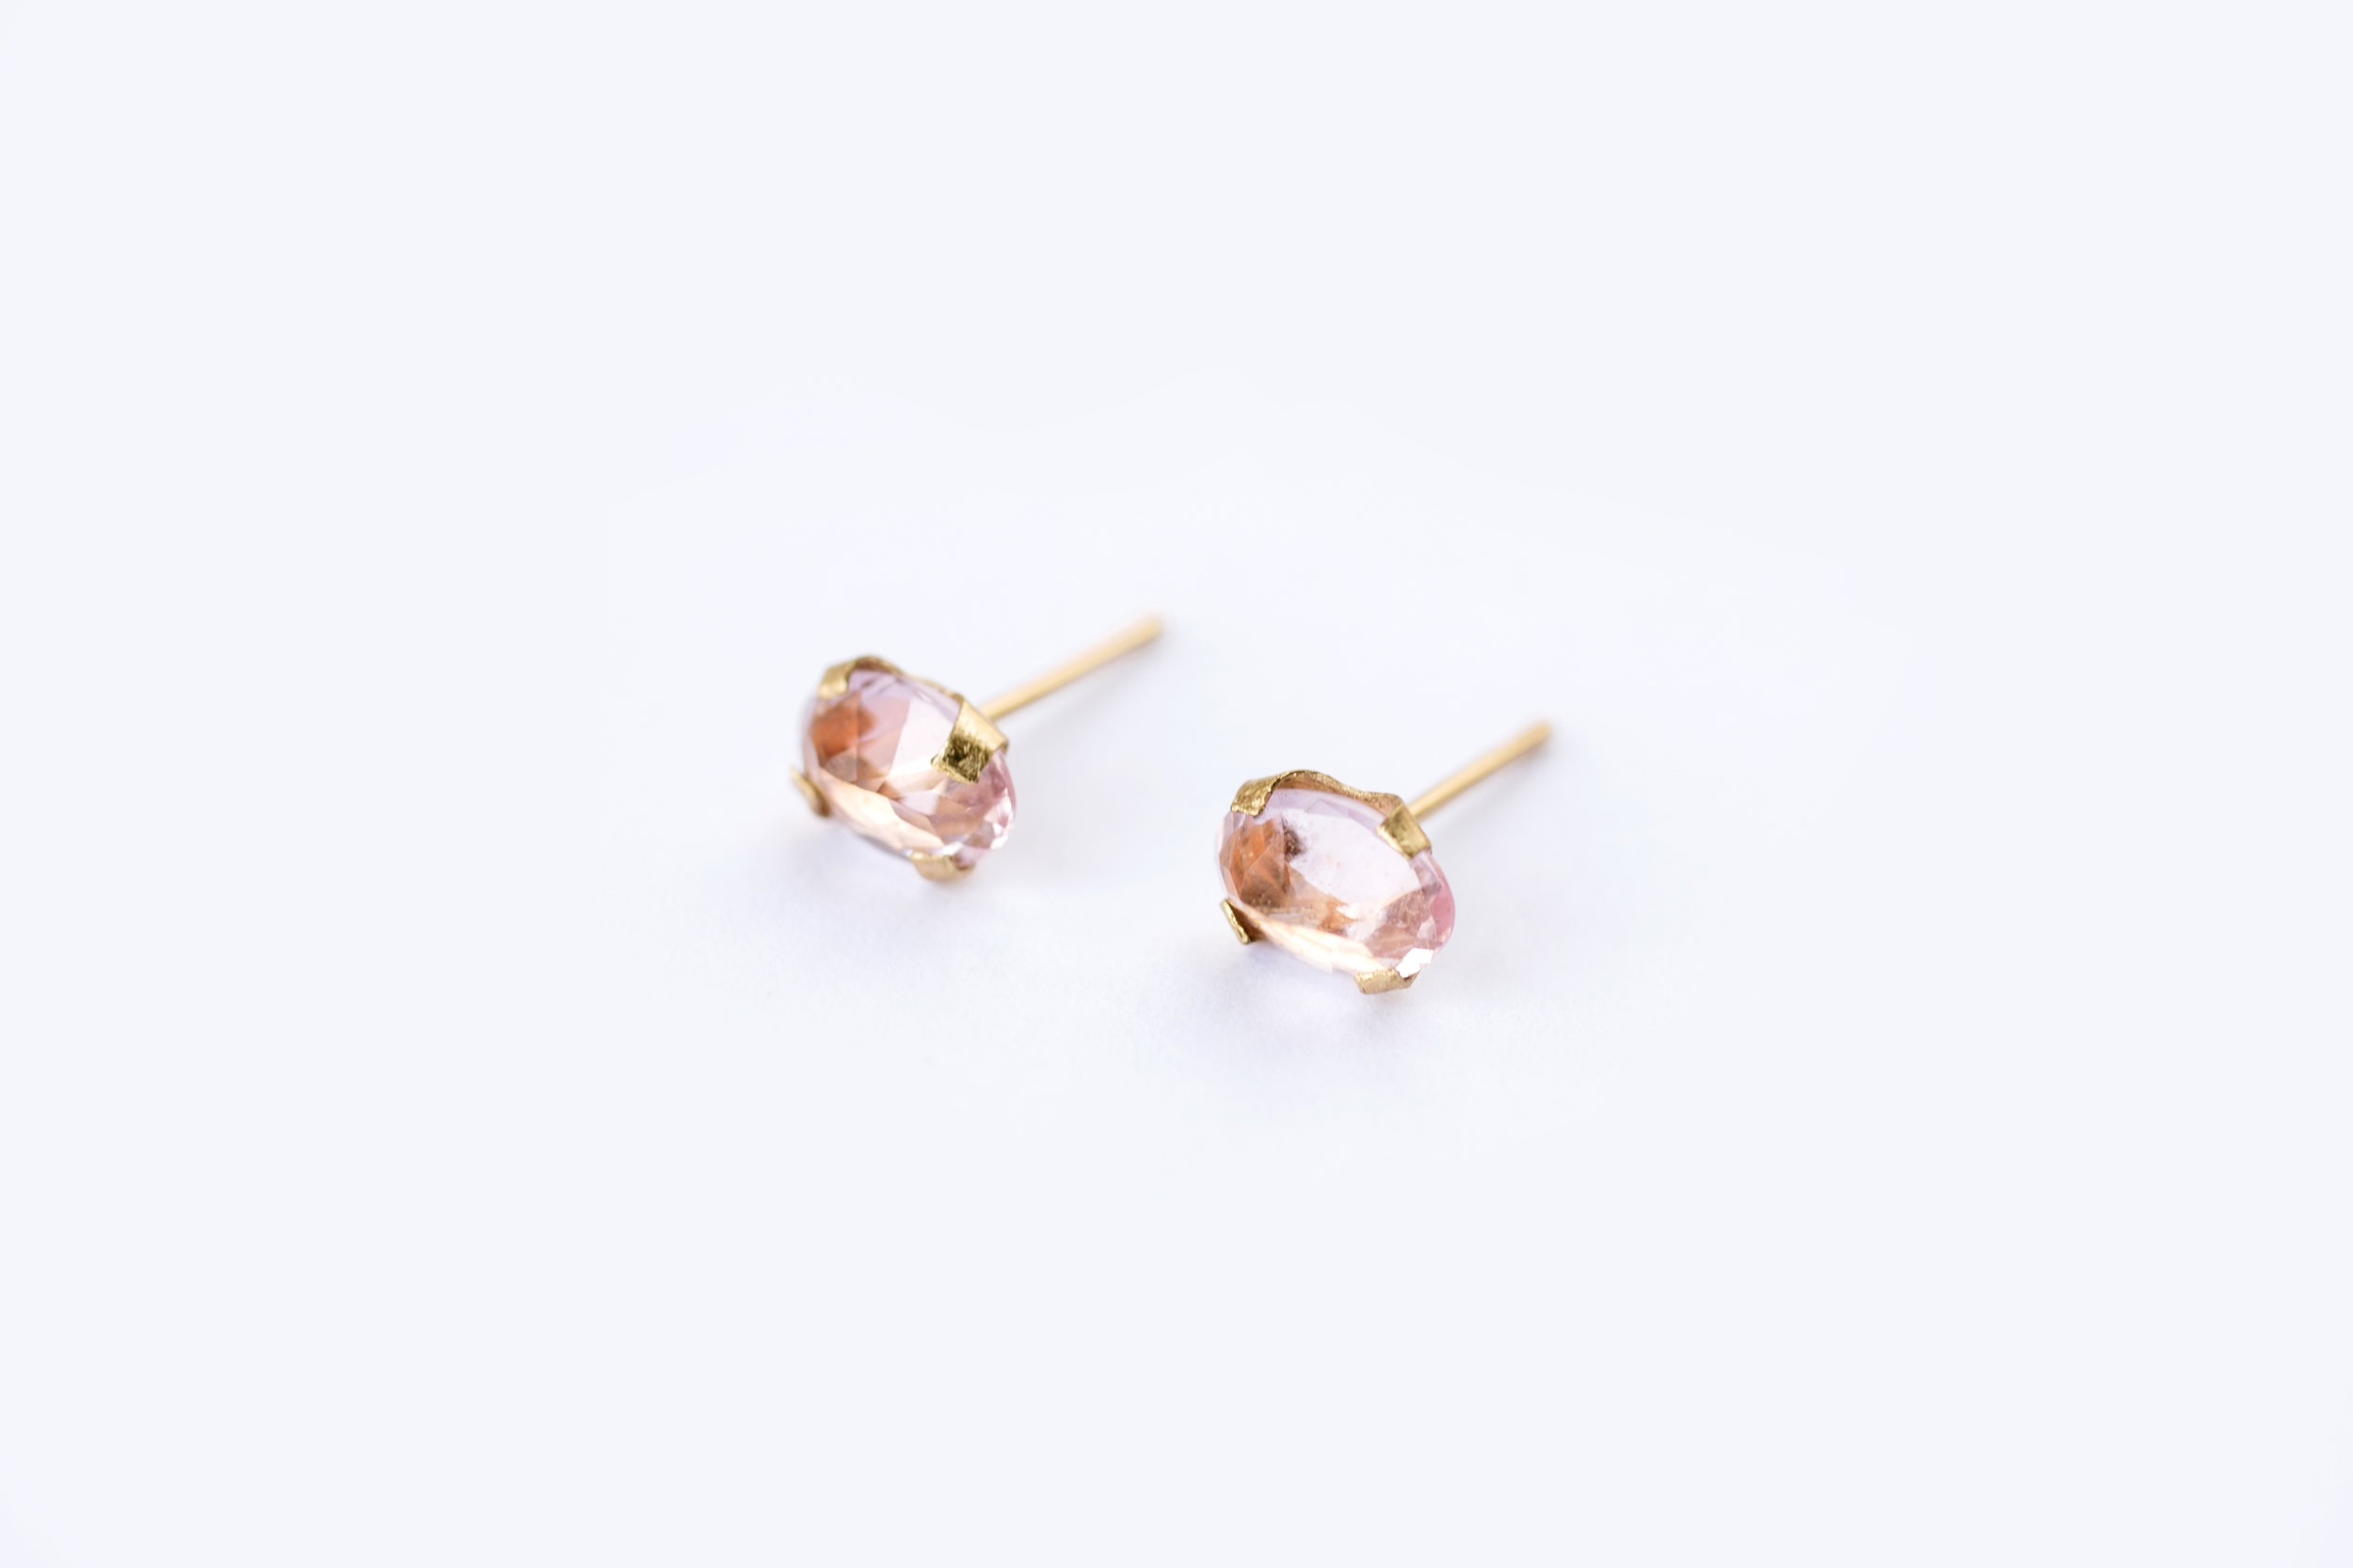 morganite earringsrose crystal blush earrings bridesmaid bridal swarovski pink earringsmorganite stud rose gold earringsblush media